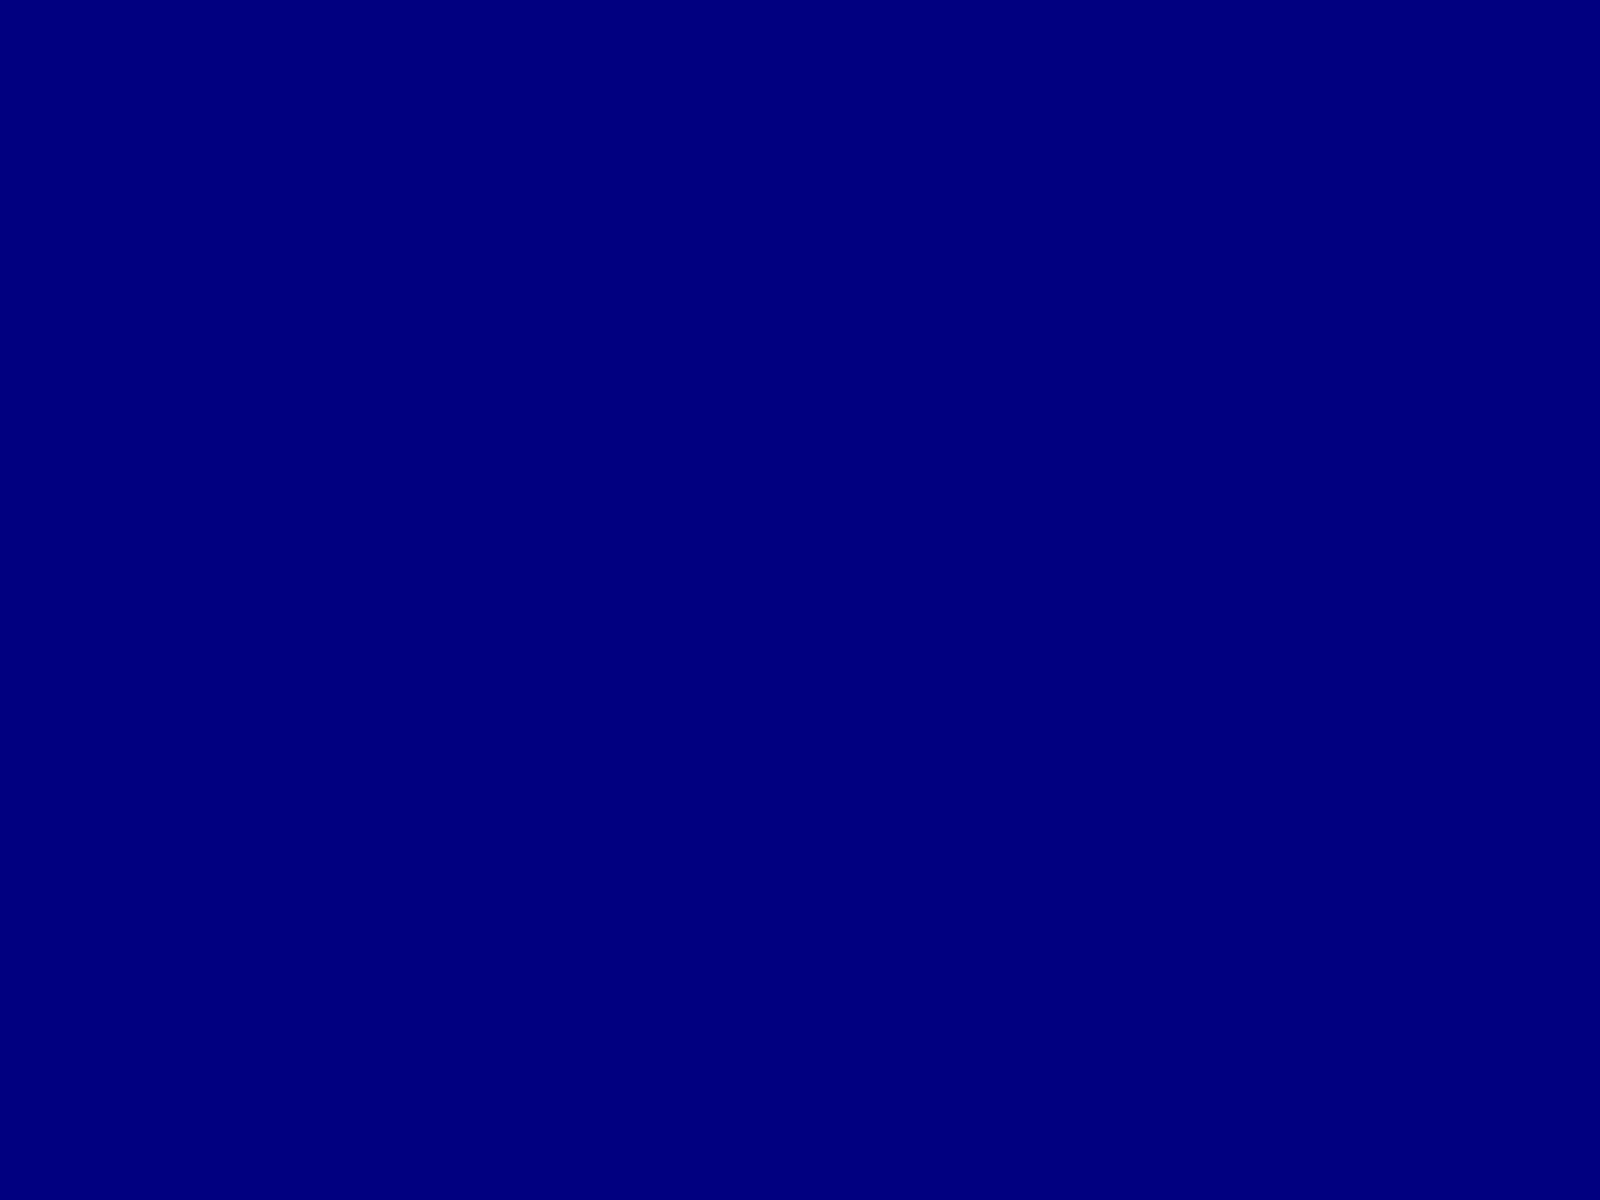 1600x1200 resolution Navy Blue solid color background view and 1600x1200